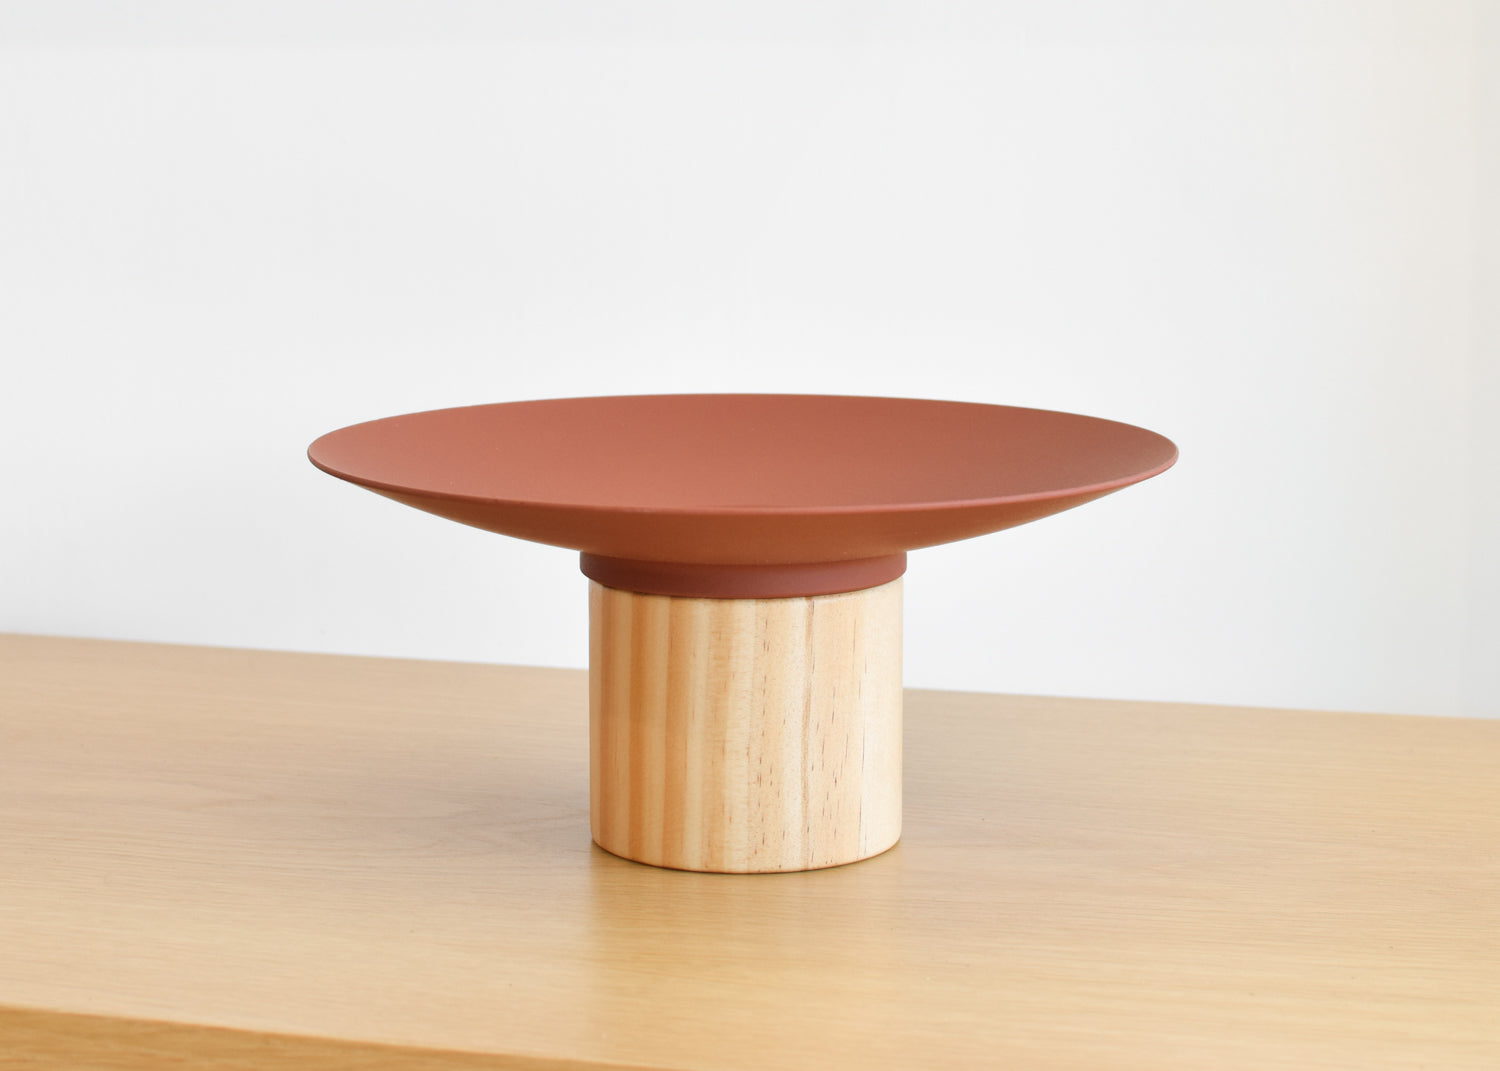 The Platform Bowl from Good Thing in red is designed to work alone or with other bowls to create a tiered display.